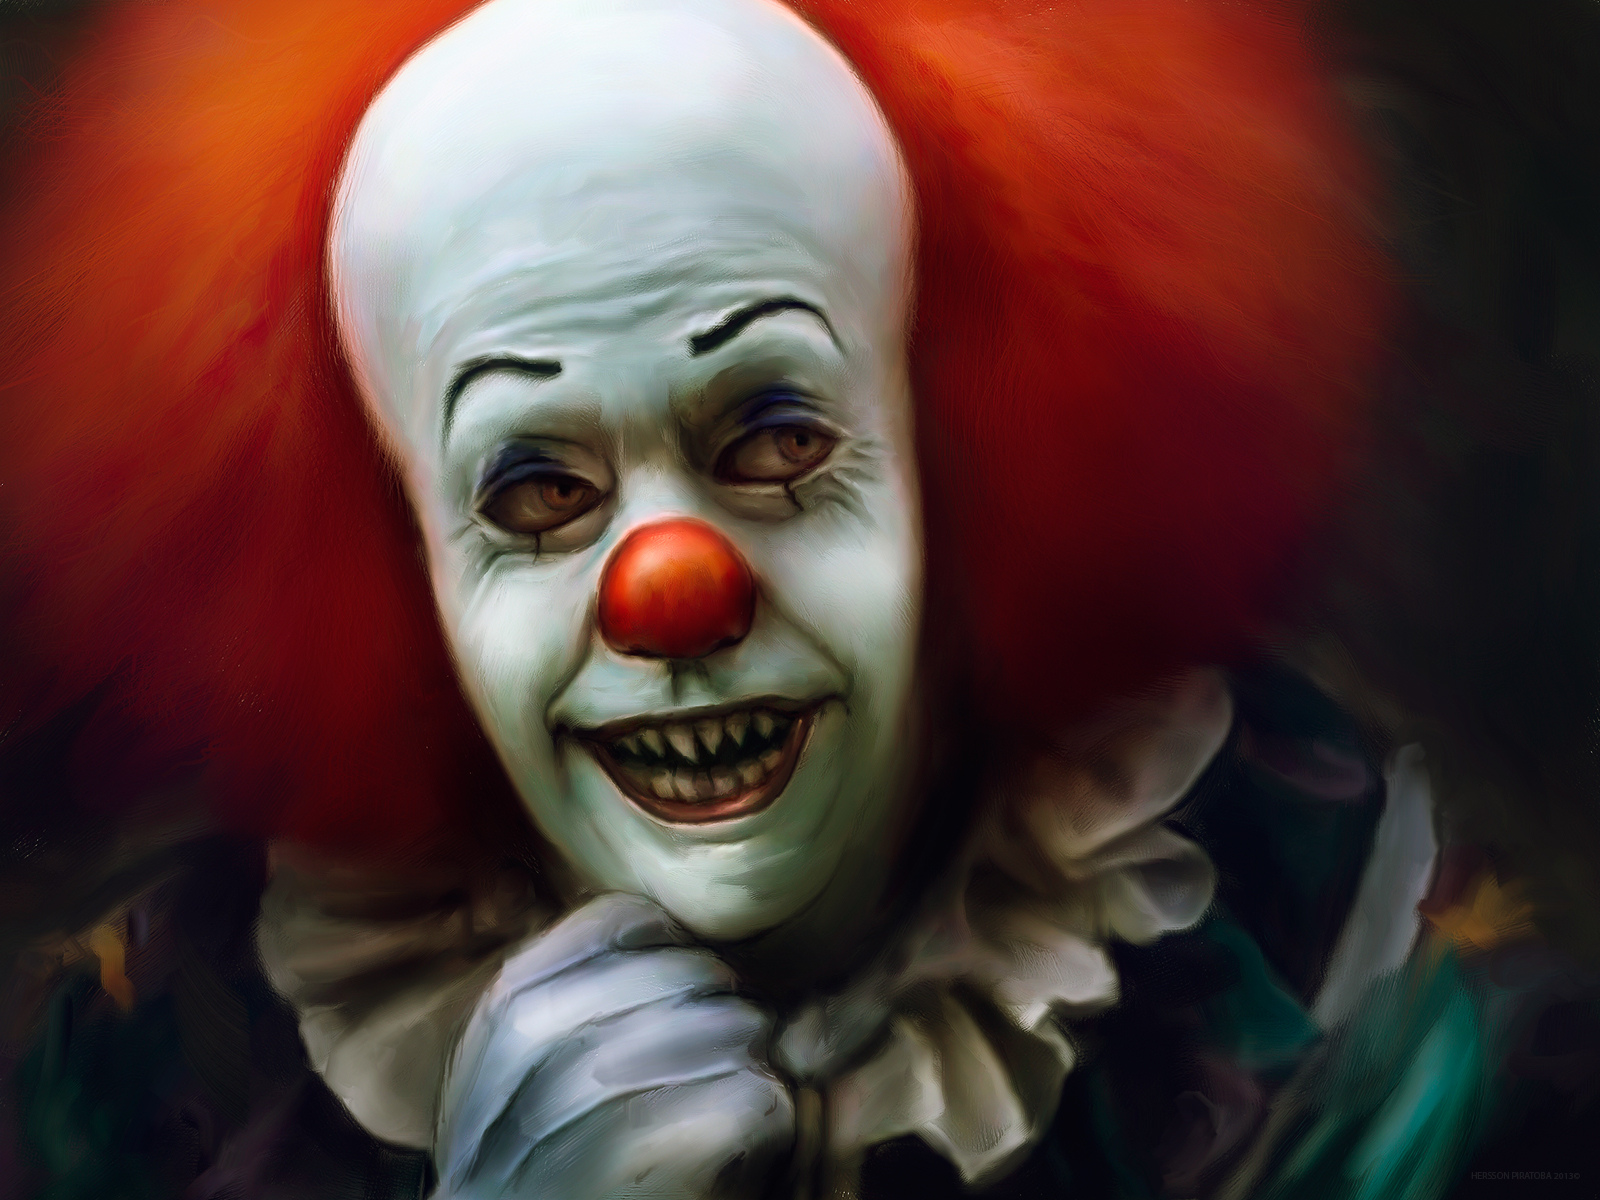 Pennywise The Clown 1990wallpaper: Pennywise The Clown Wallpaper